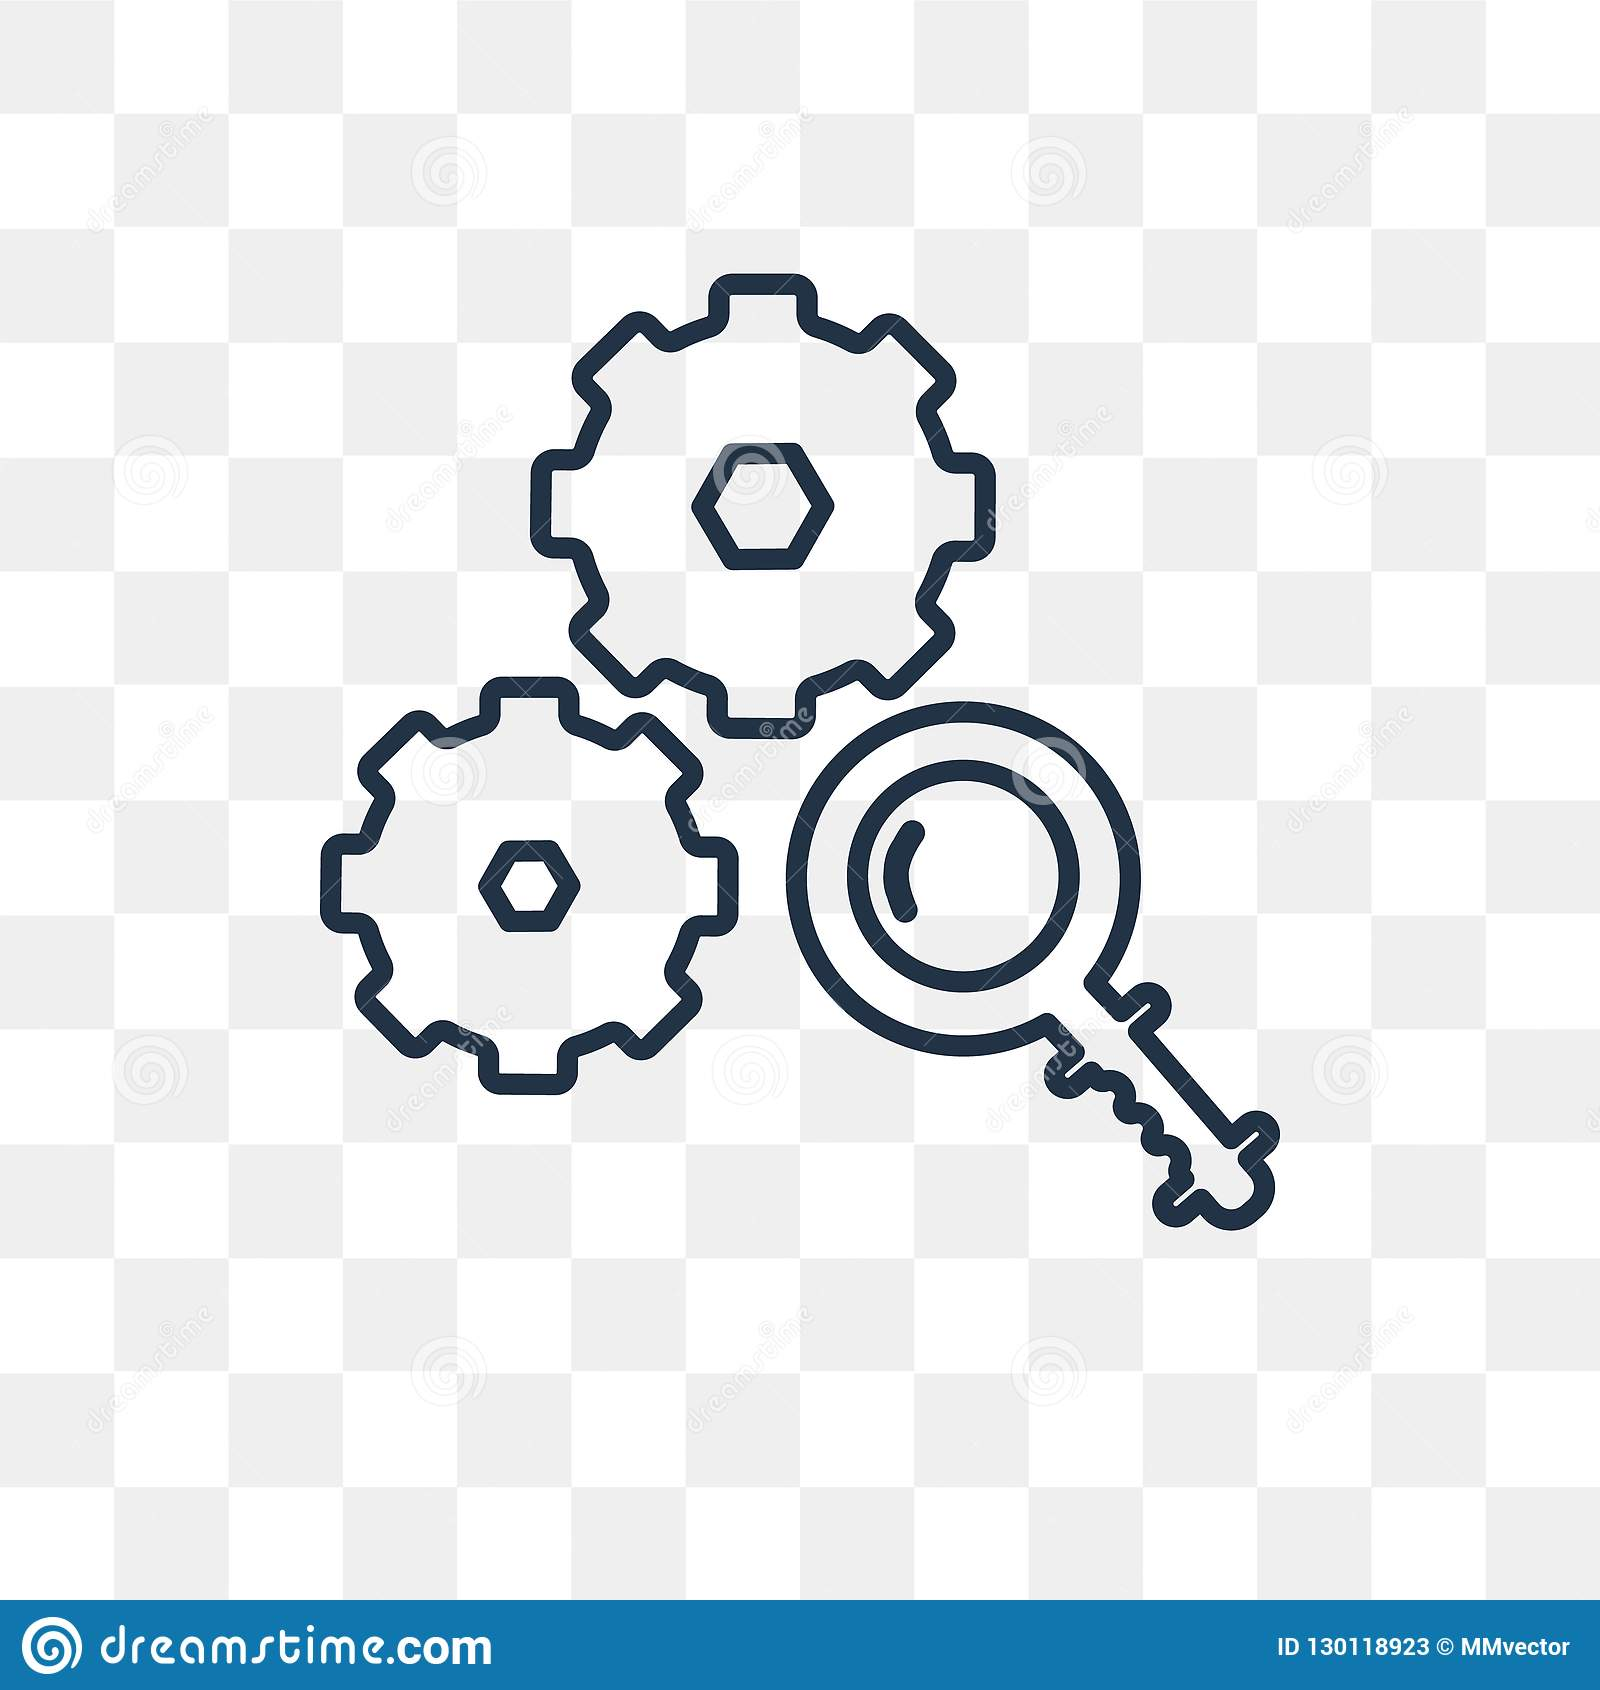 Analyze Png No Background - Analyze Vector Icon Isolated On Transparent Background, Linear A ...